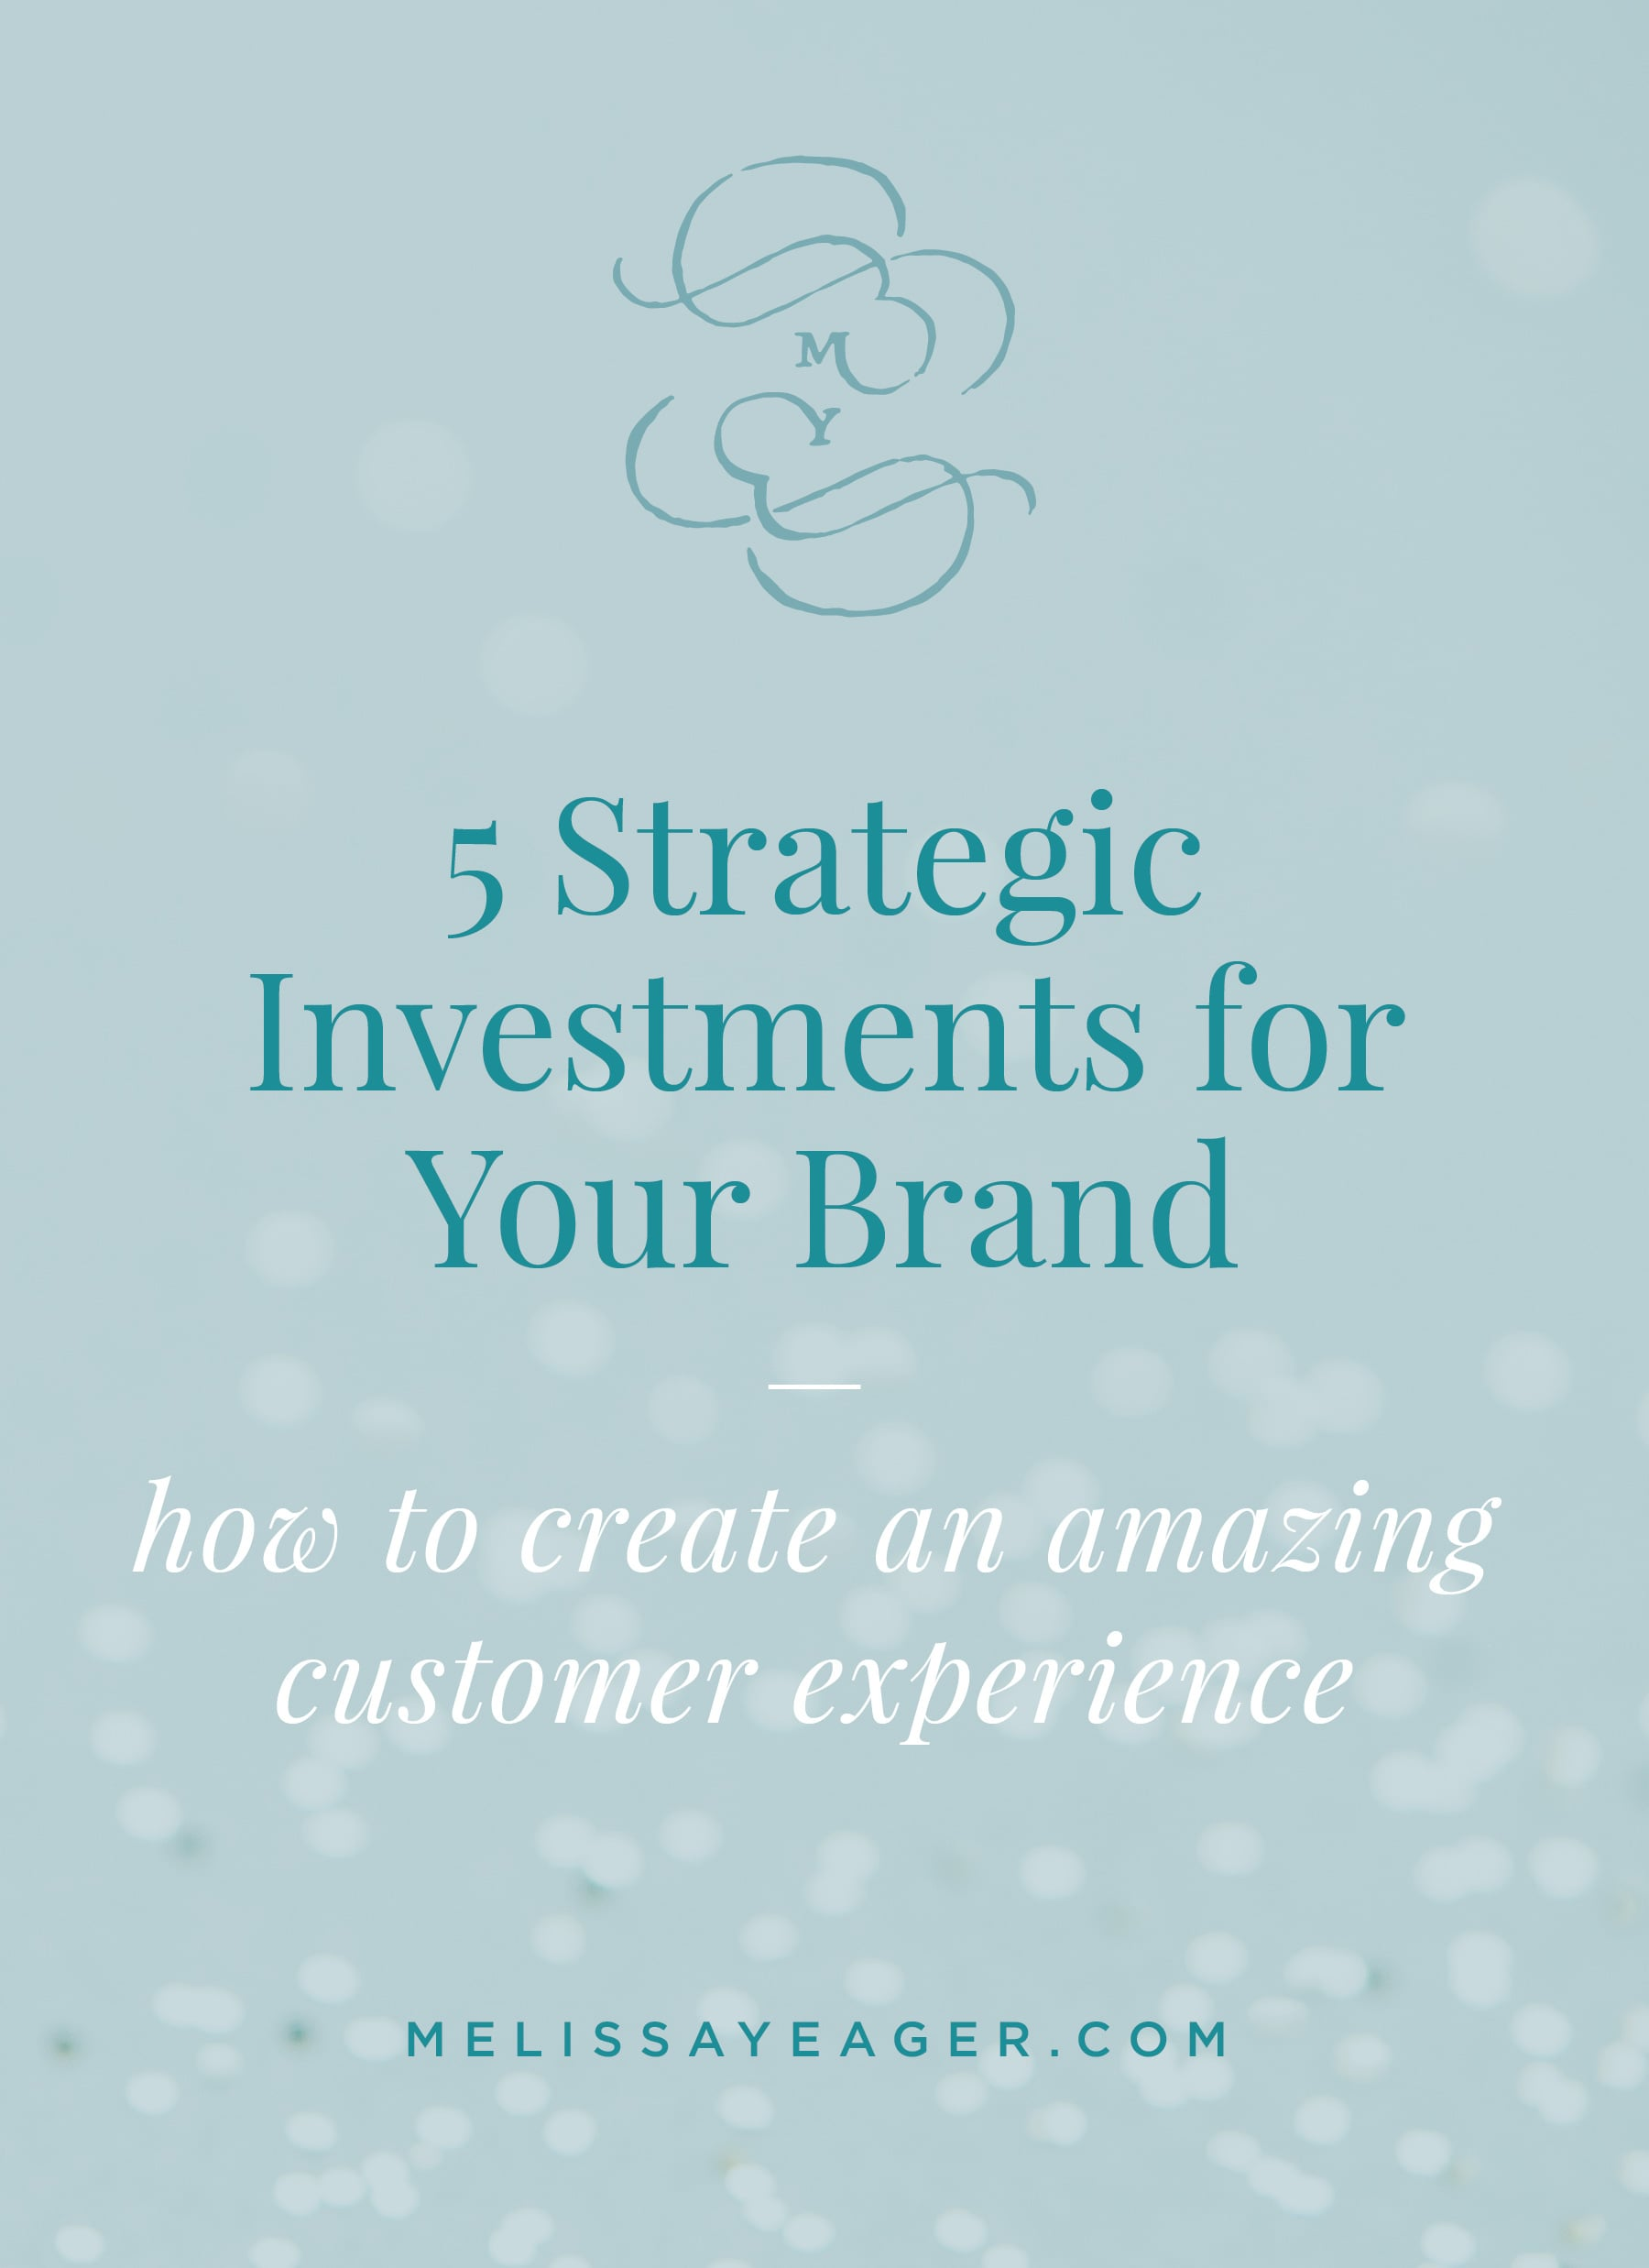 5 Strategic Investments for Your Brand: how to create an amazing customer experience